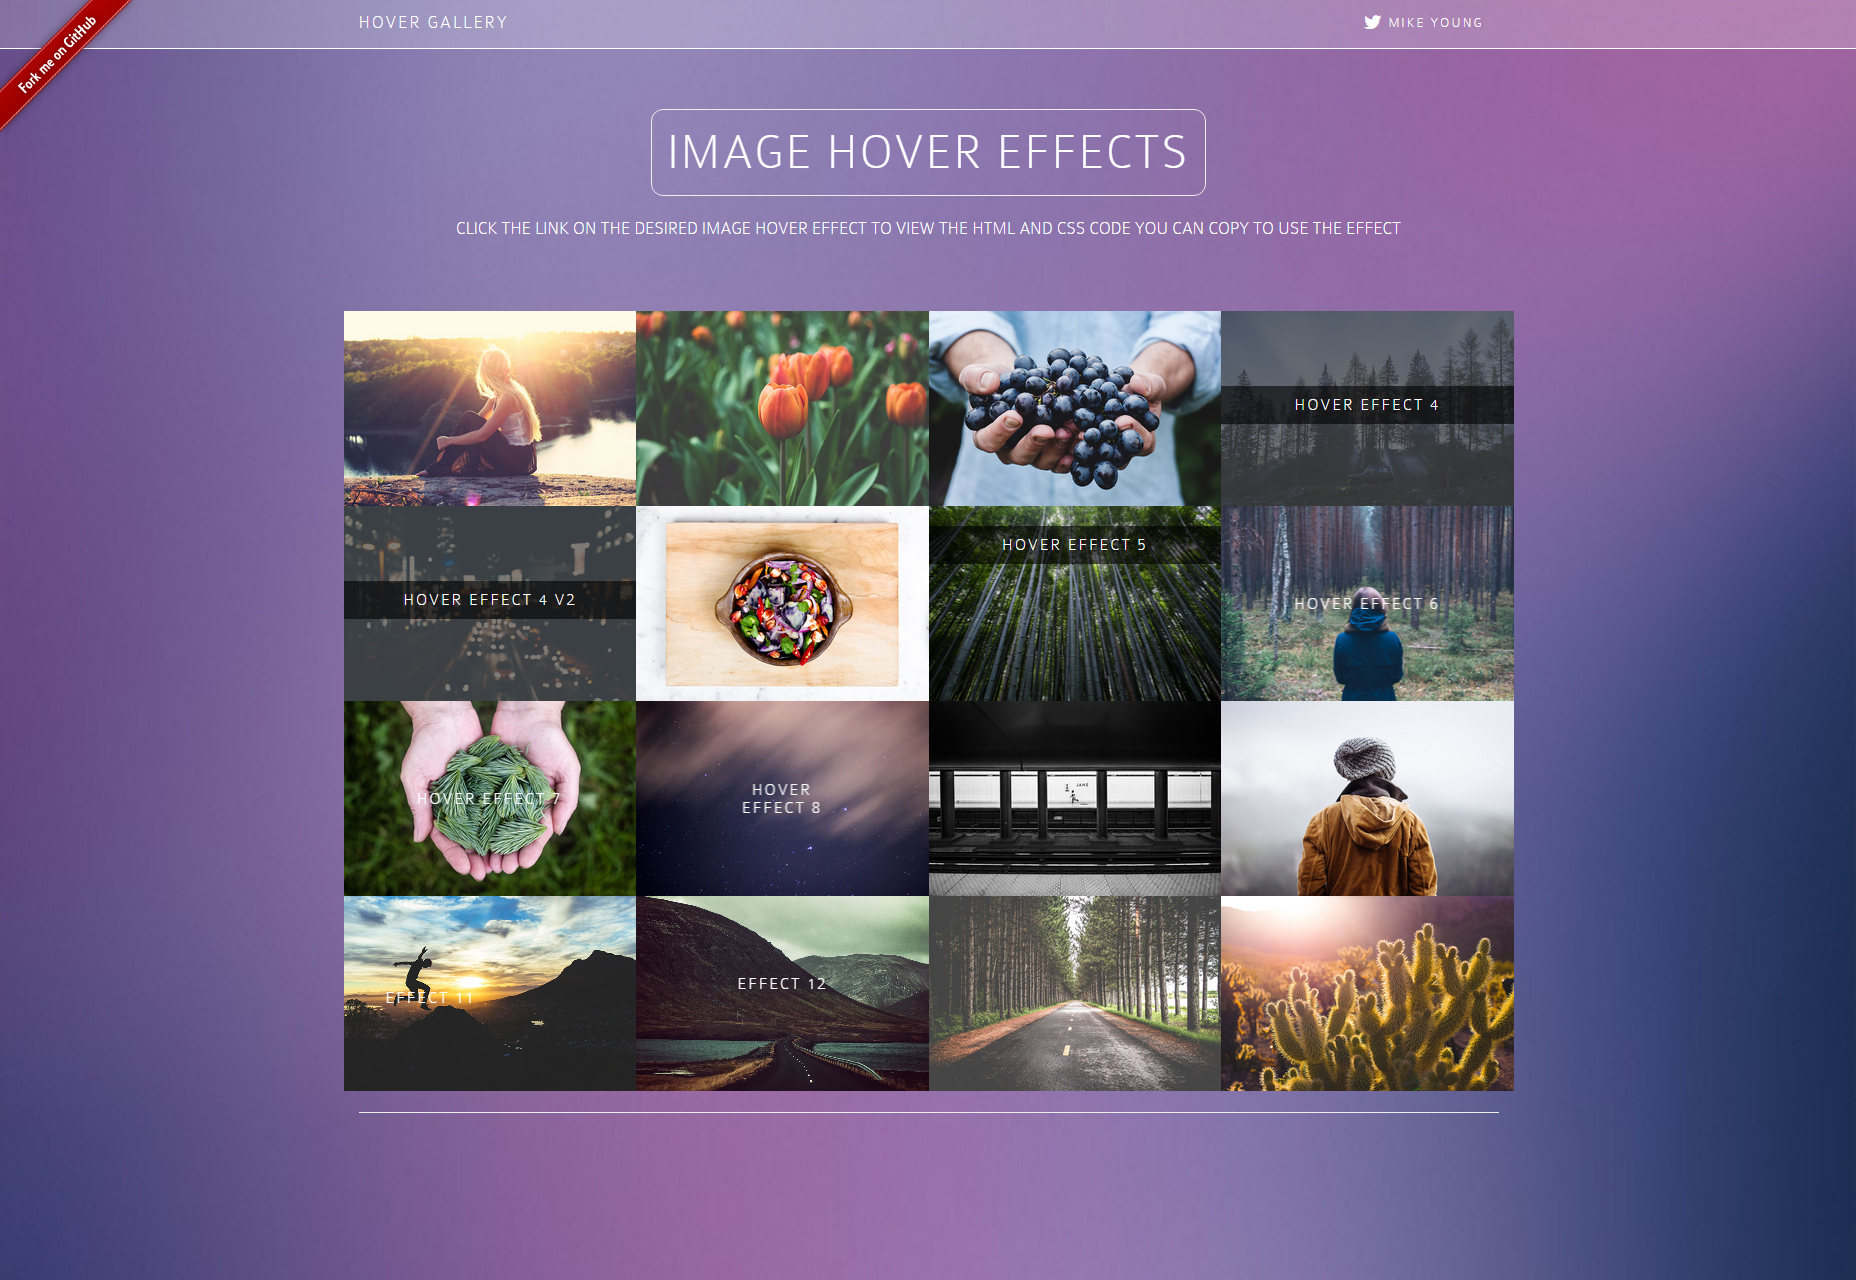 bootstrap-image-hover-html-css-effects-gallery